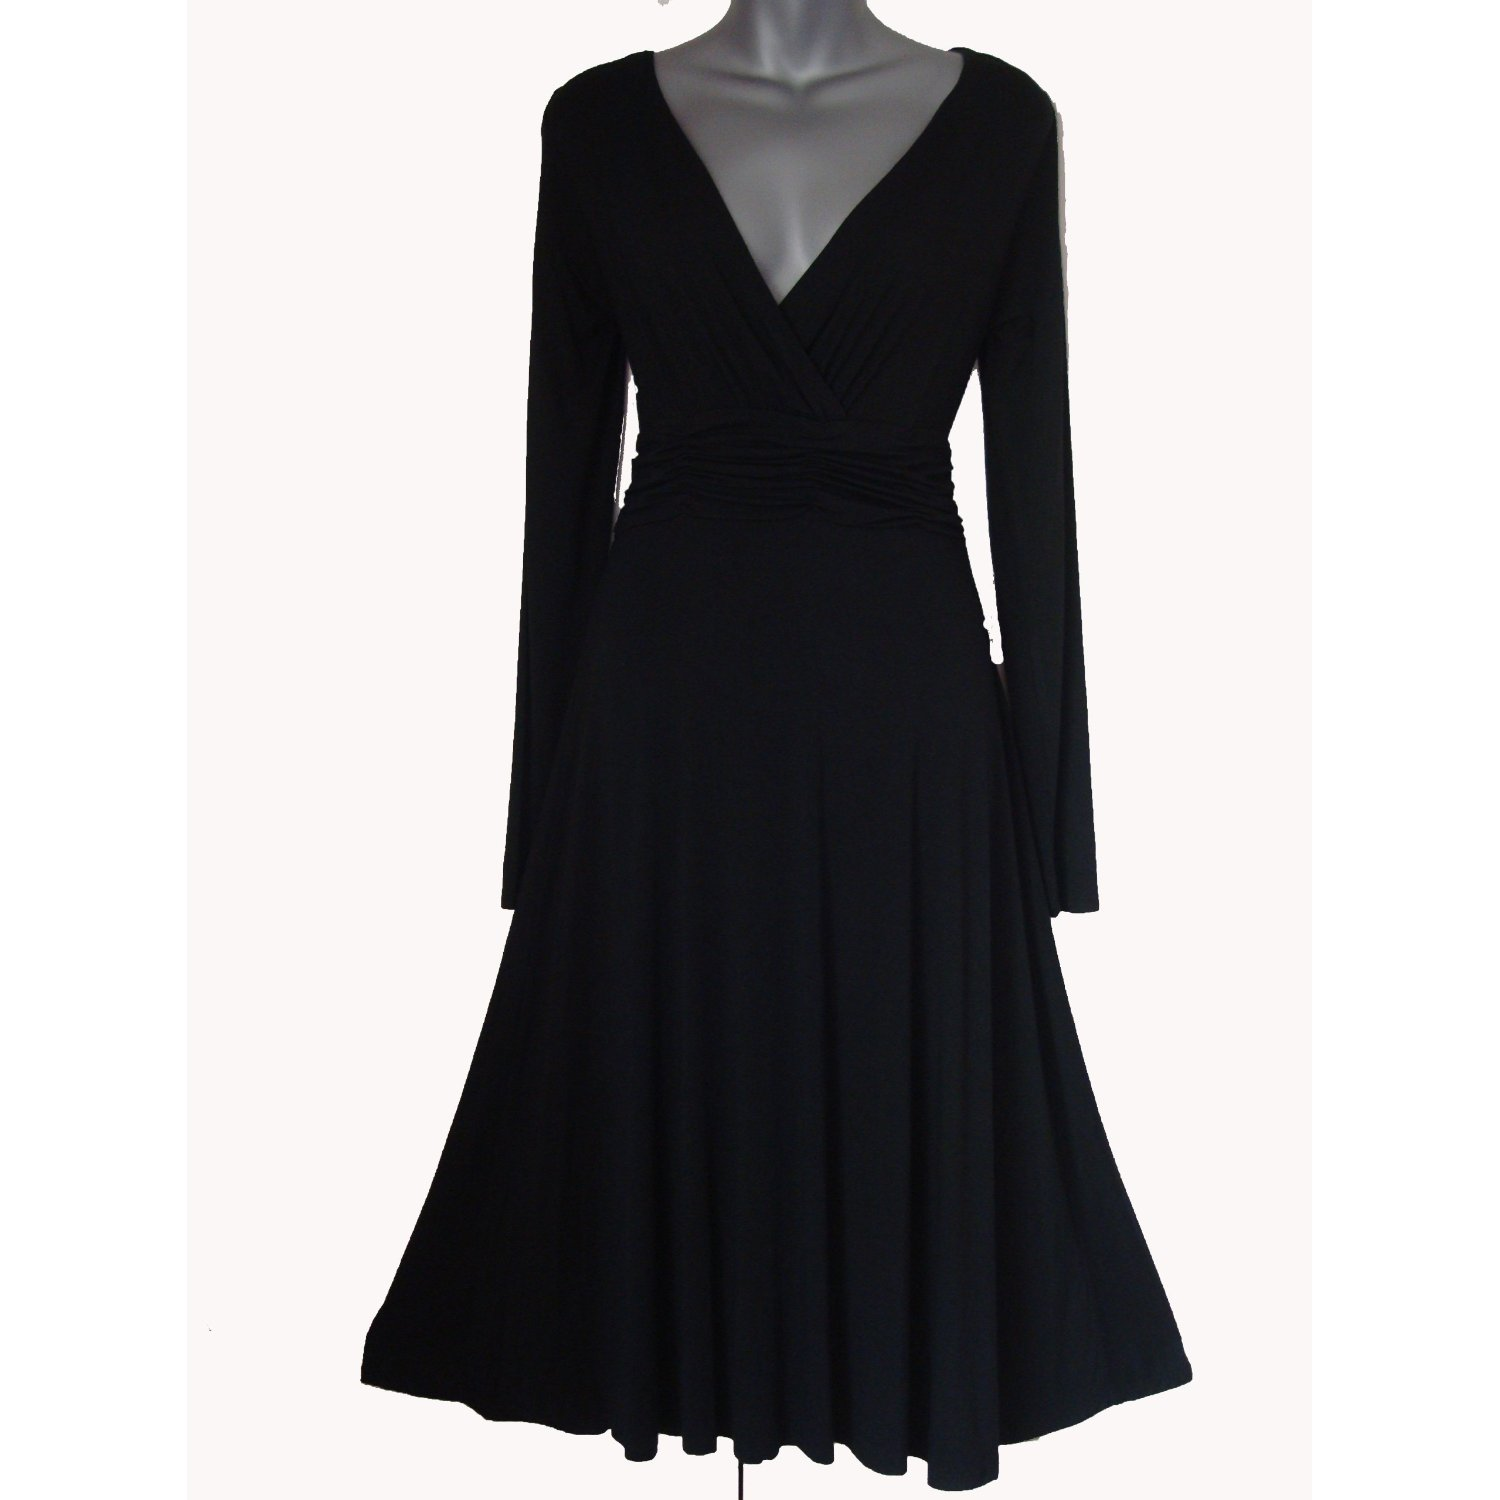 Simple black dress it has a bit of stretch to accomodate christmas